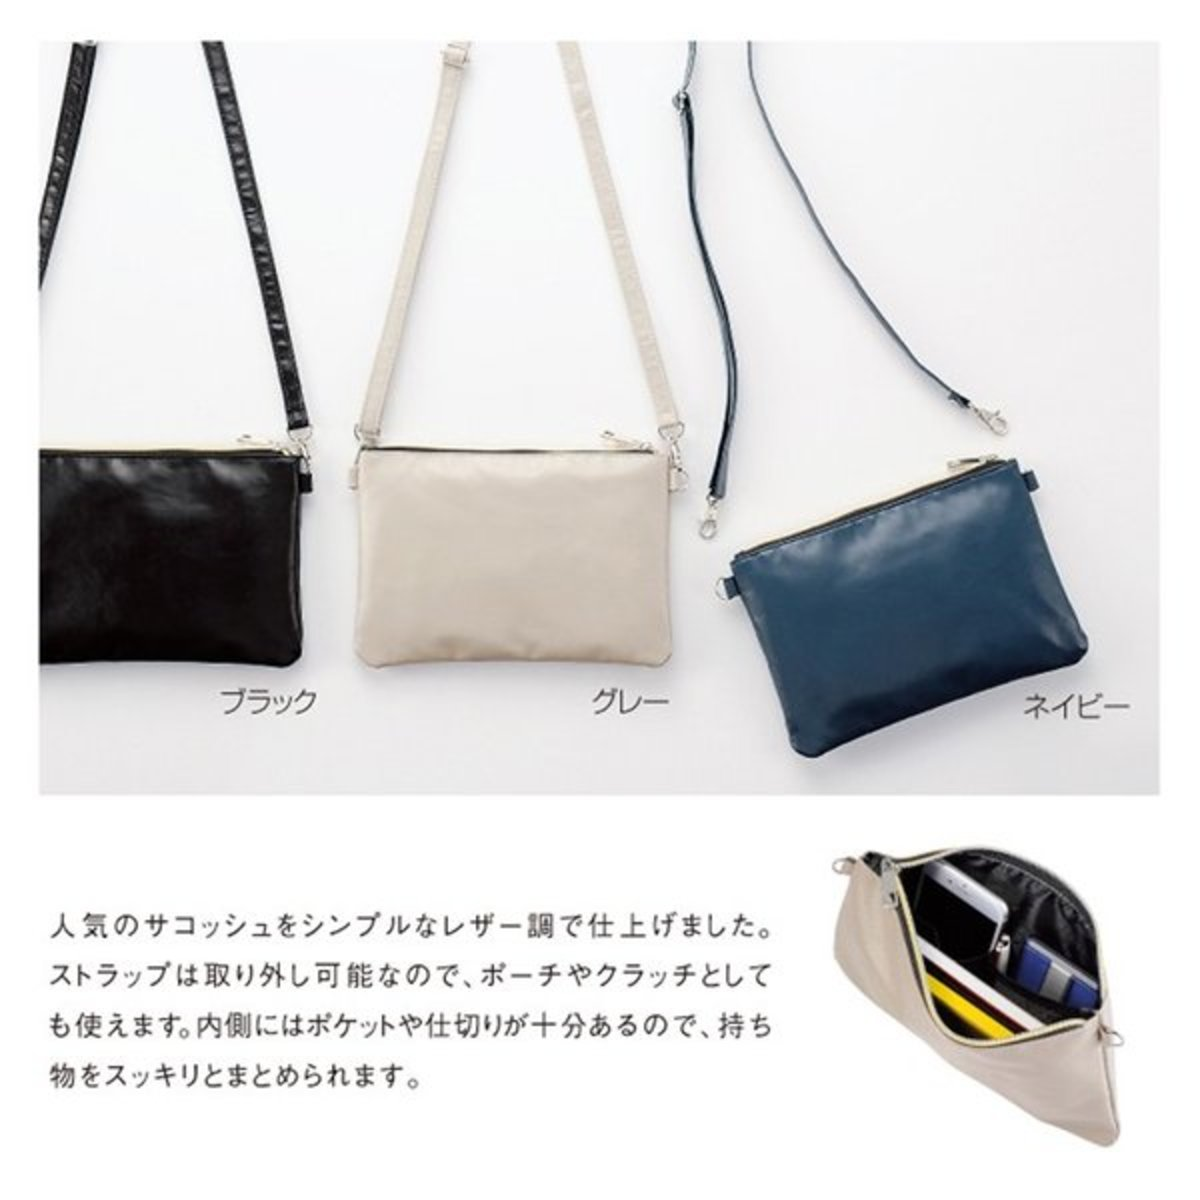 (Blue) Japan raviene 2WAY Clutches / Shoulder Bag